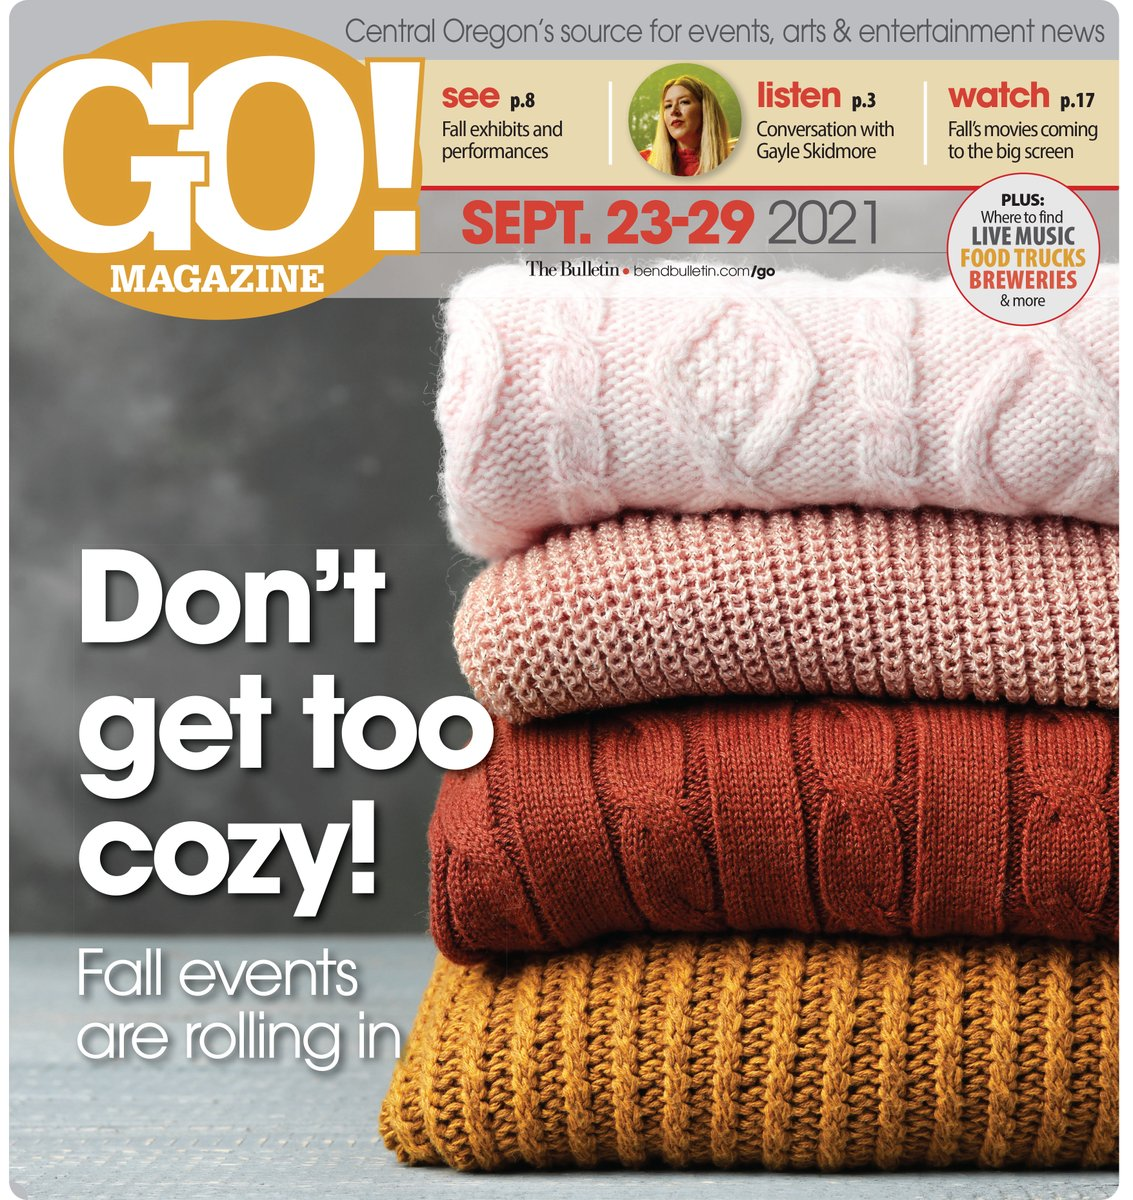 In this week's GO! Magazine: Fall into fall events with new exhibits at the High Desert Museum, upcoming BendFilm, teen theater at Cascades Theatrical Company, Gayle Skidmore performs, 'Get More Happier' with comedian/speaker Anthony Poponi, fall movies and more!